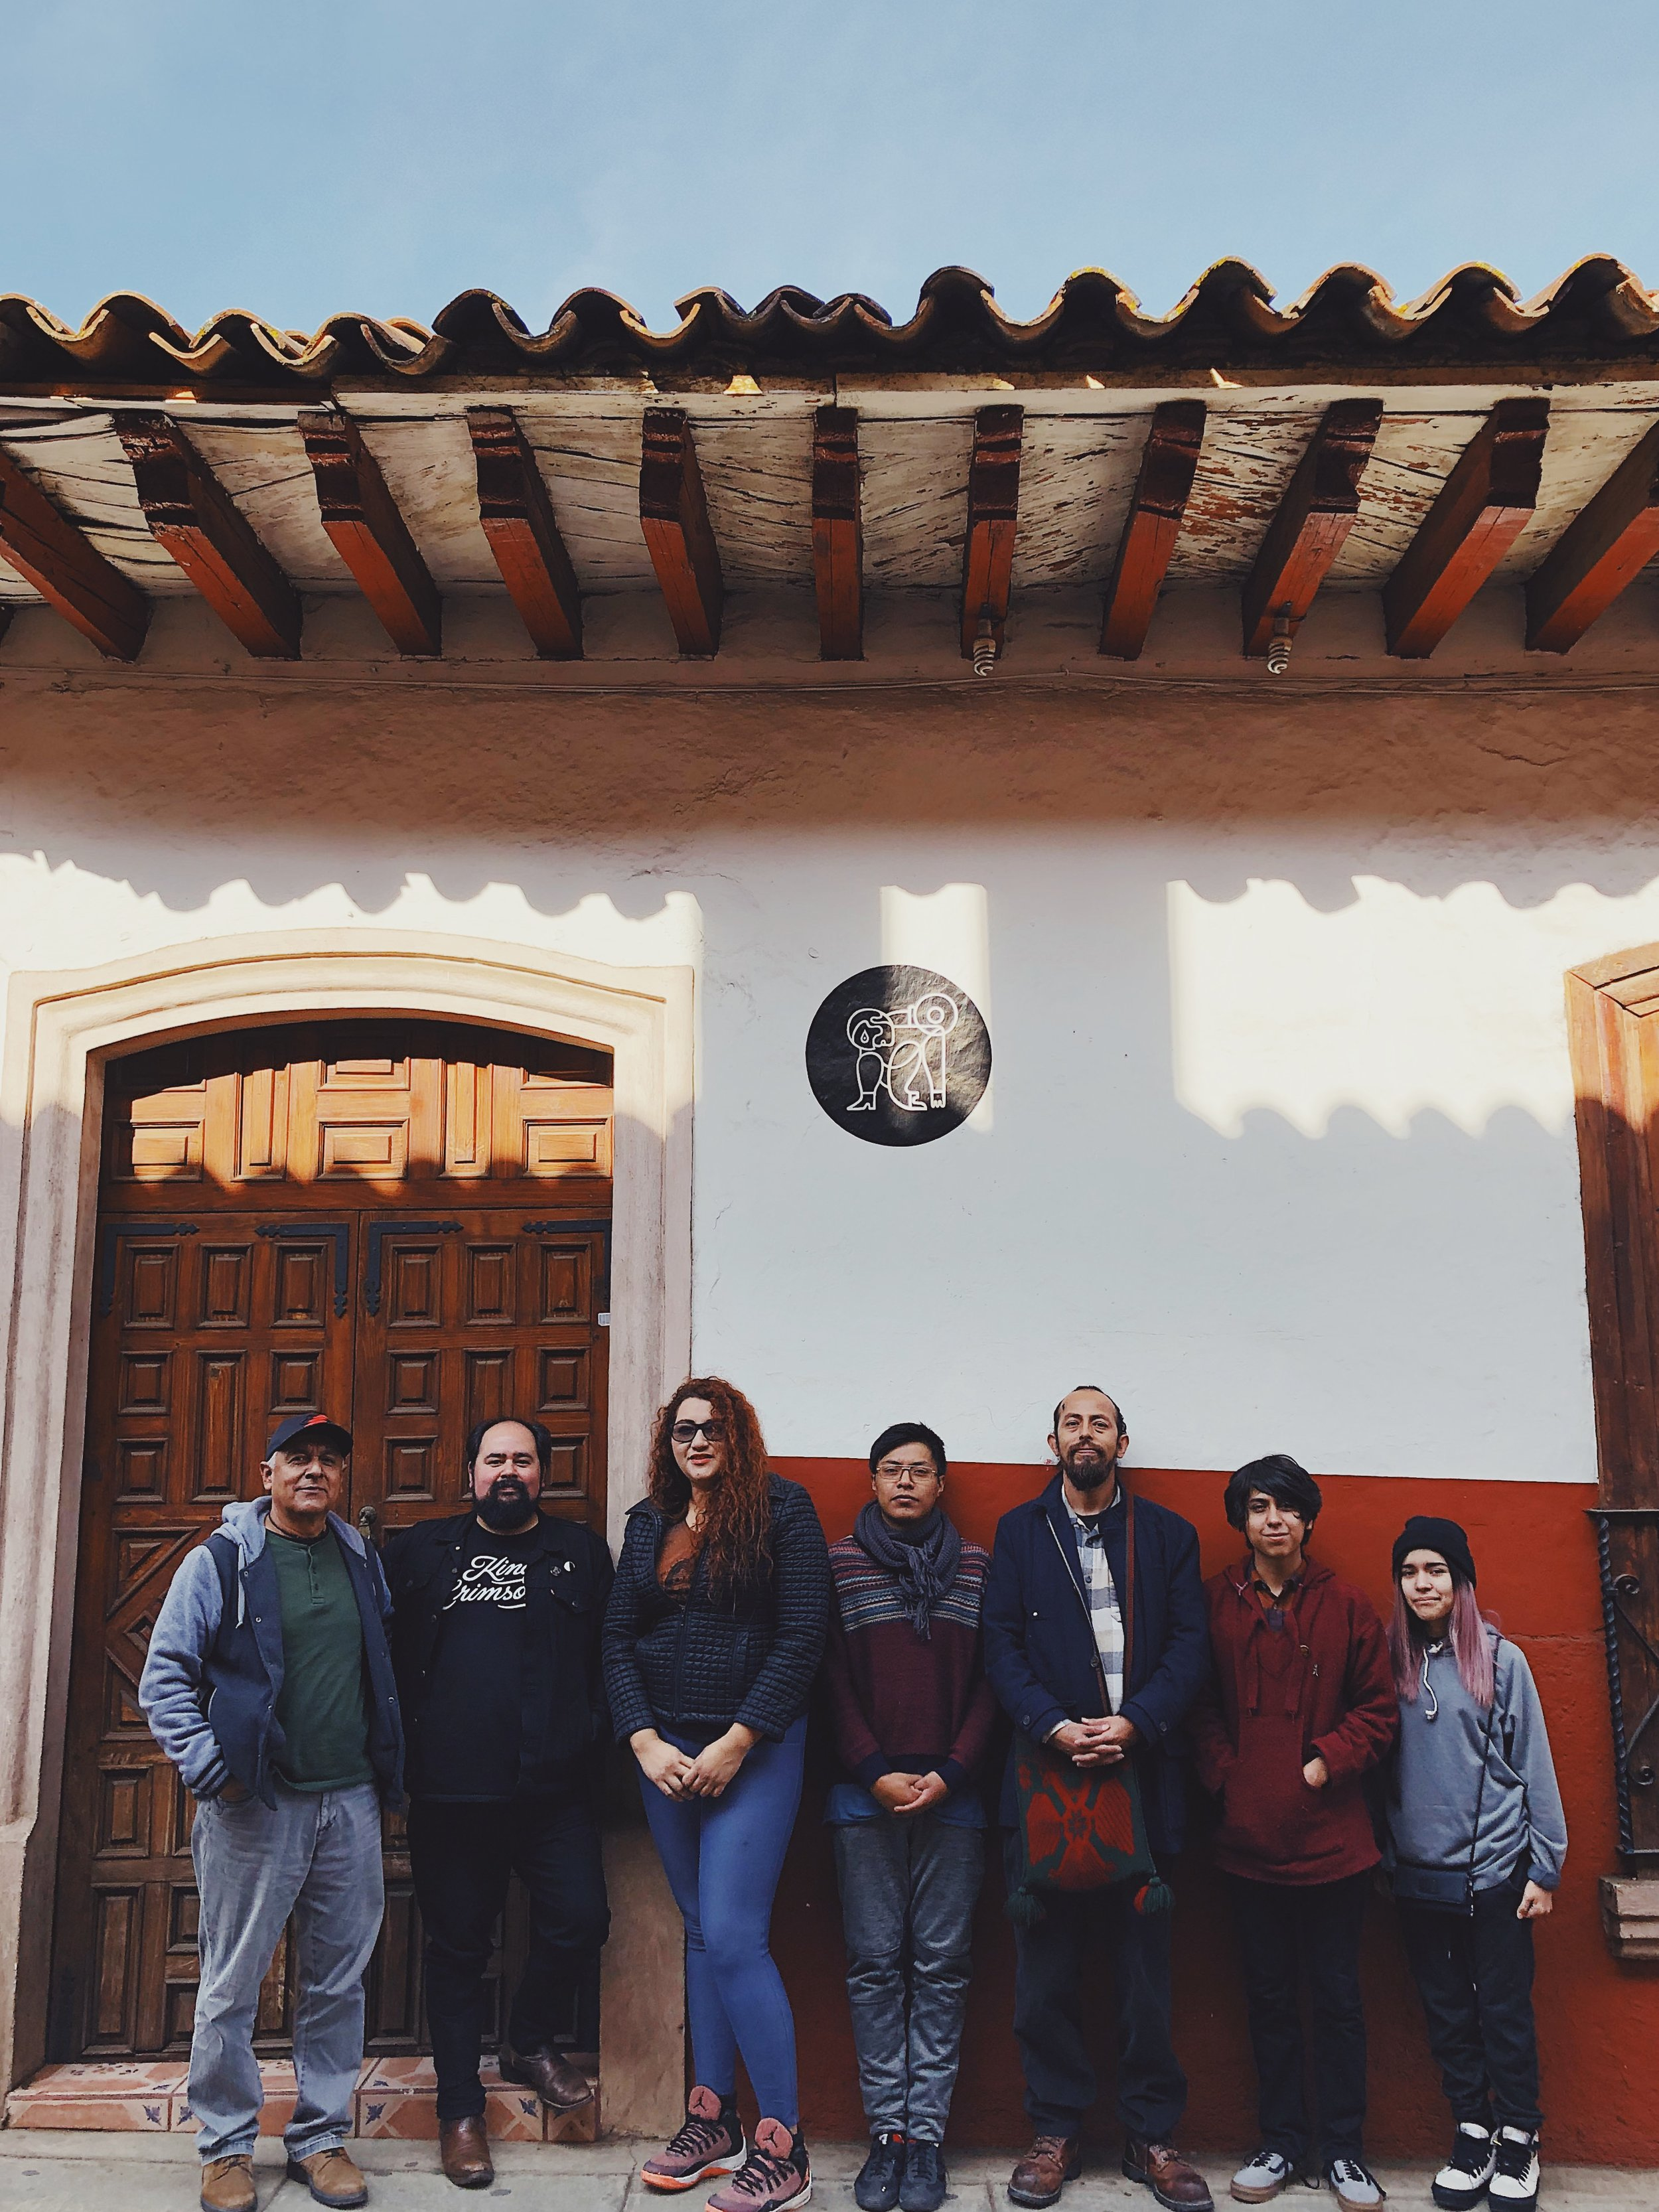 Artist Residency with our friends from studio Gabazo, in Tepic, Nayarit. Residencia con nuestros amigos del taller Gabazo en Tepic Nayarit.